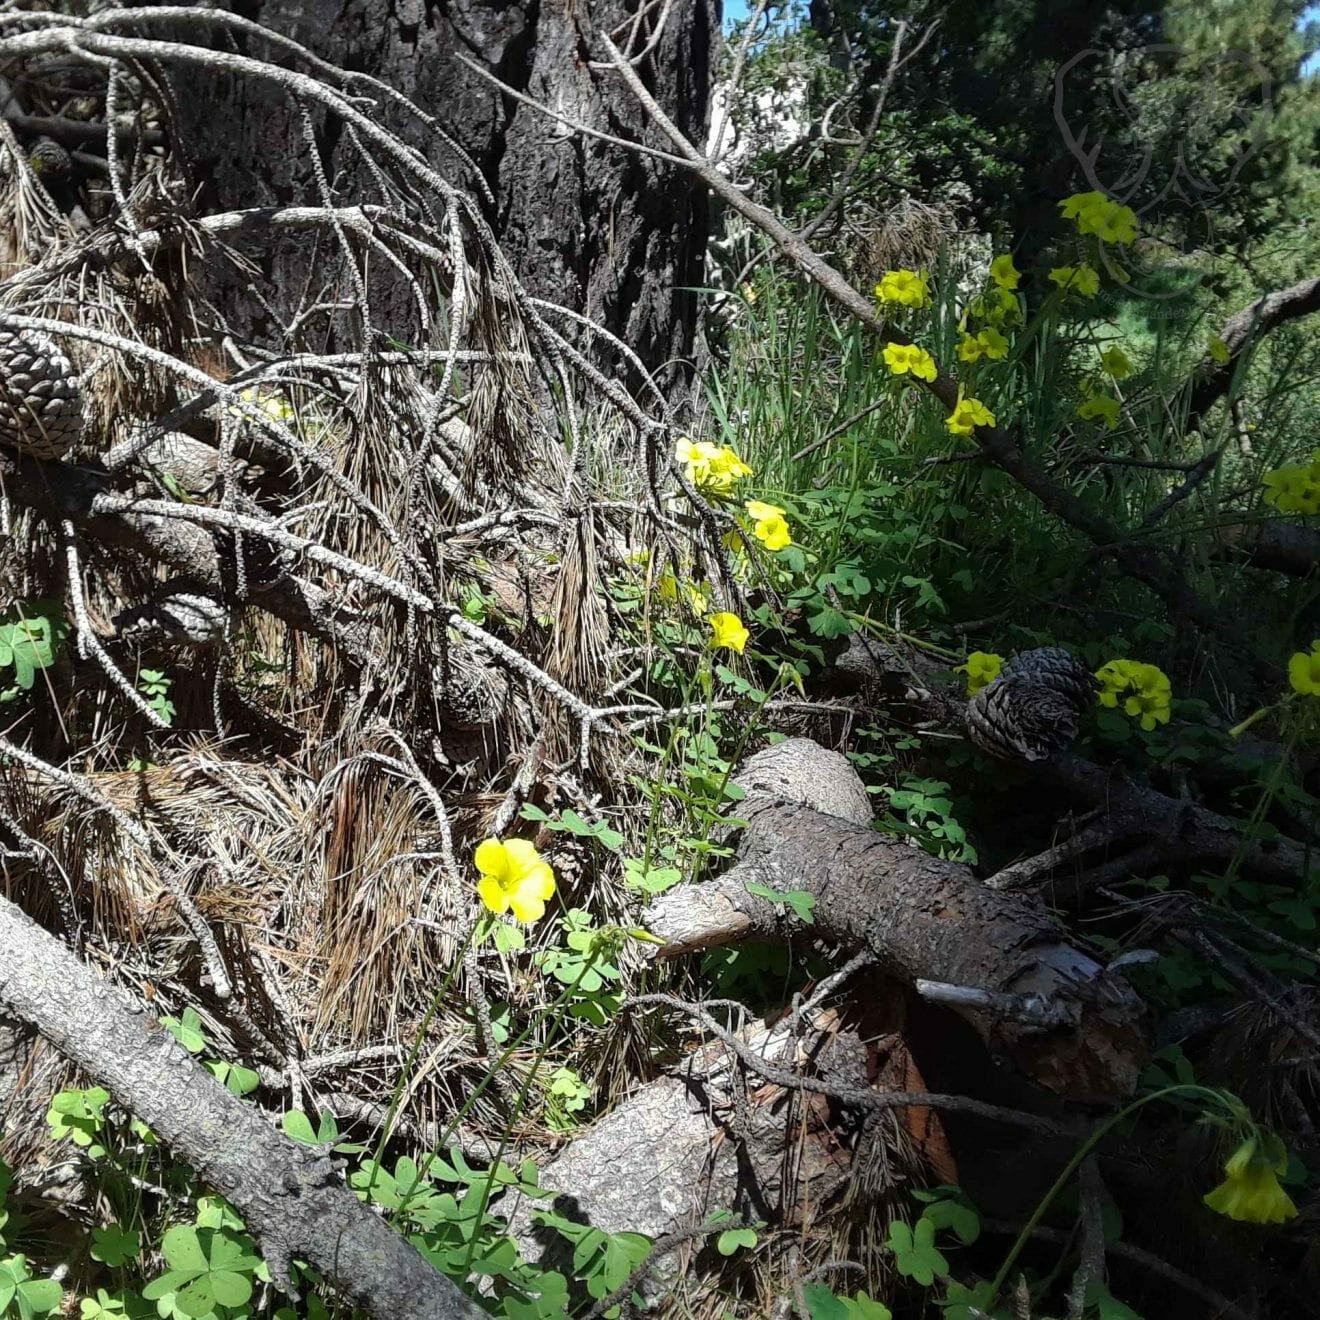 Flowers on a fallen tree limb, California (Miranda Hernandez)